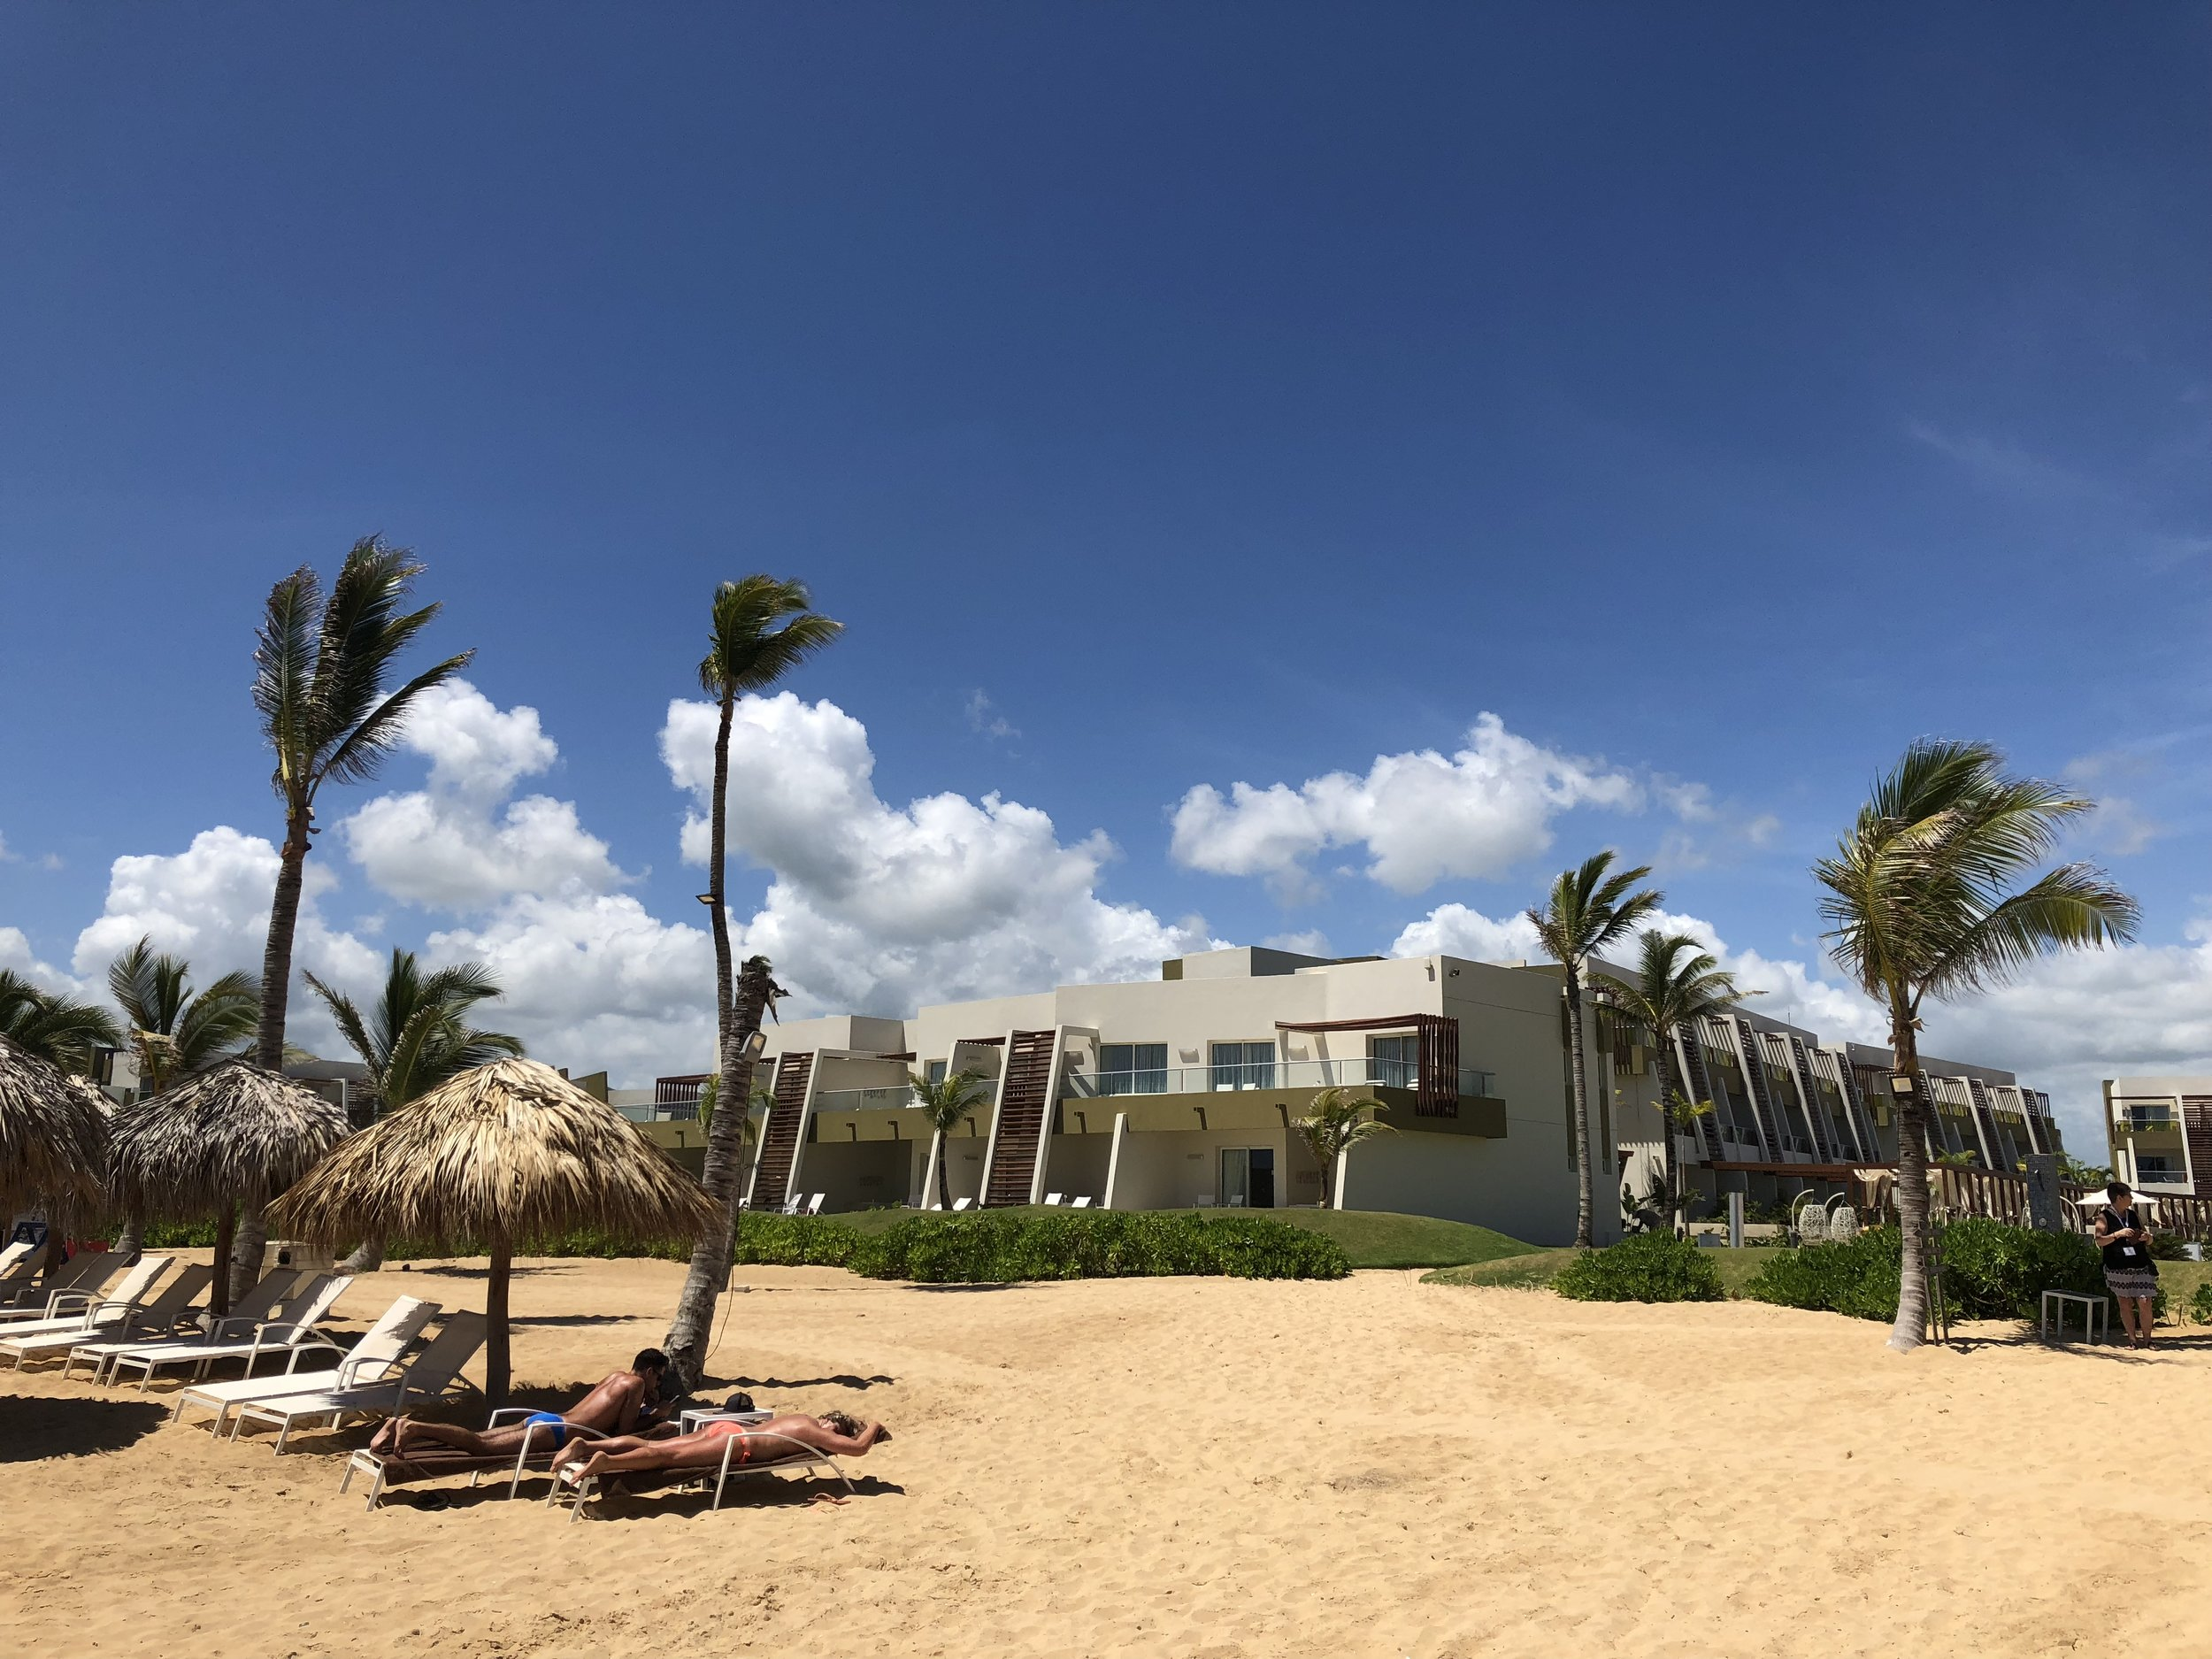 A view of one side of the resort from the beach.